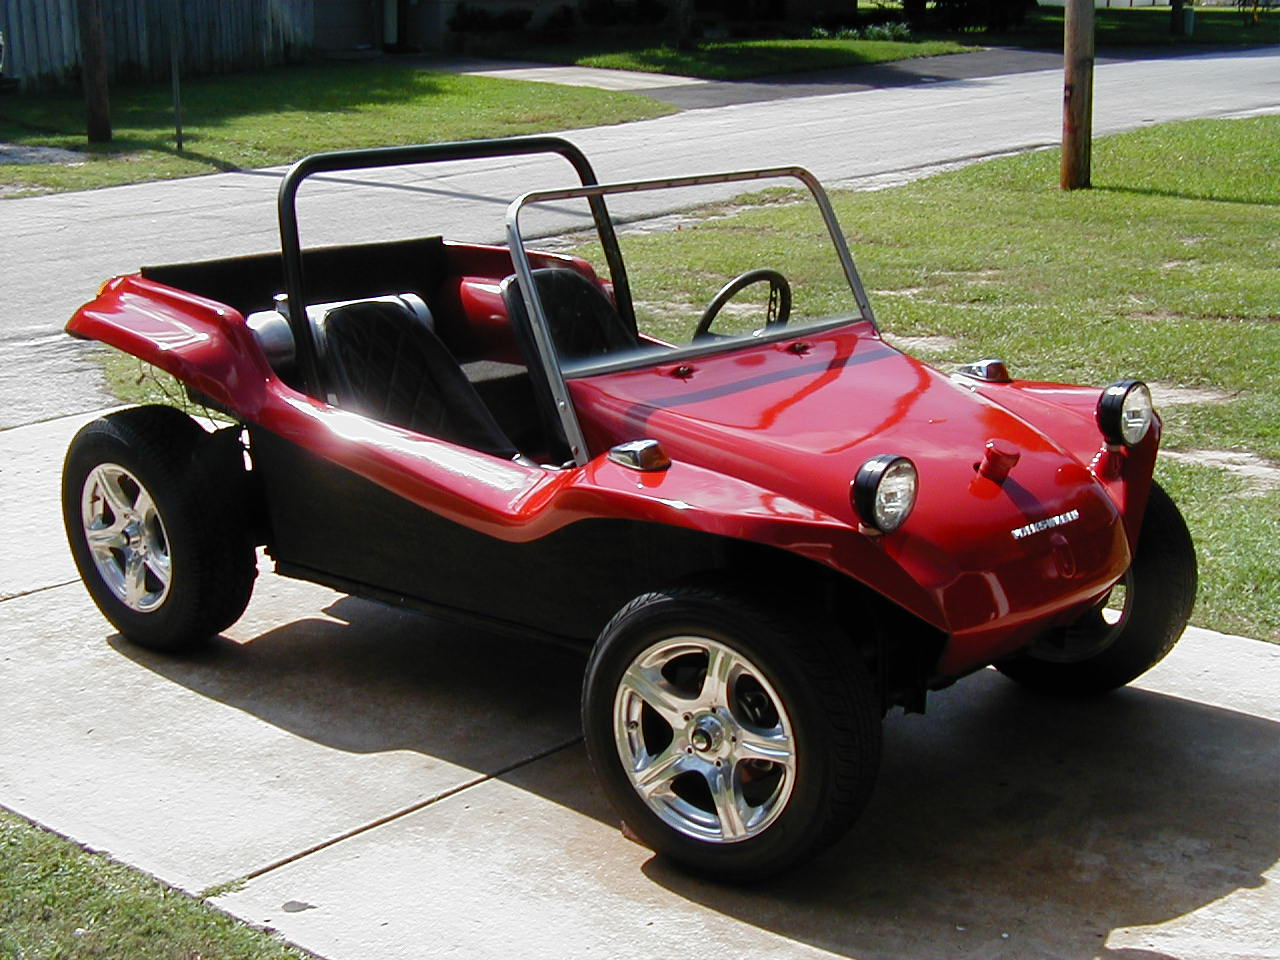 volkswagen dune buggy photos news reviews specs car listings. Black Bedroom Furniture Sets. Home Design Ideas